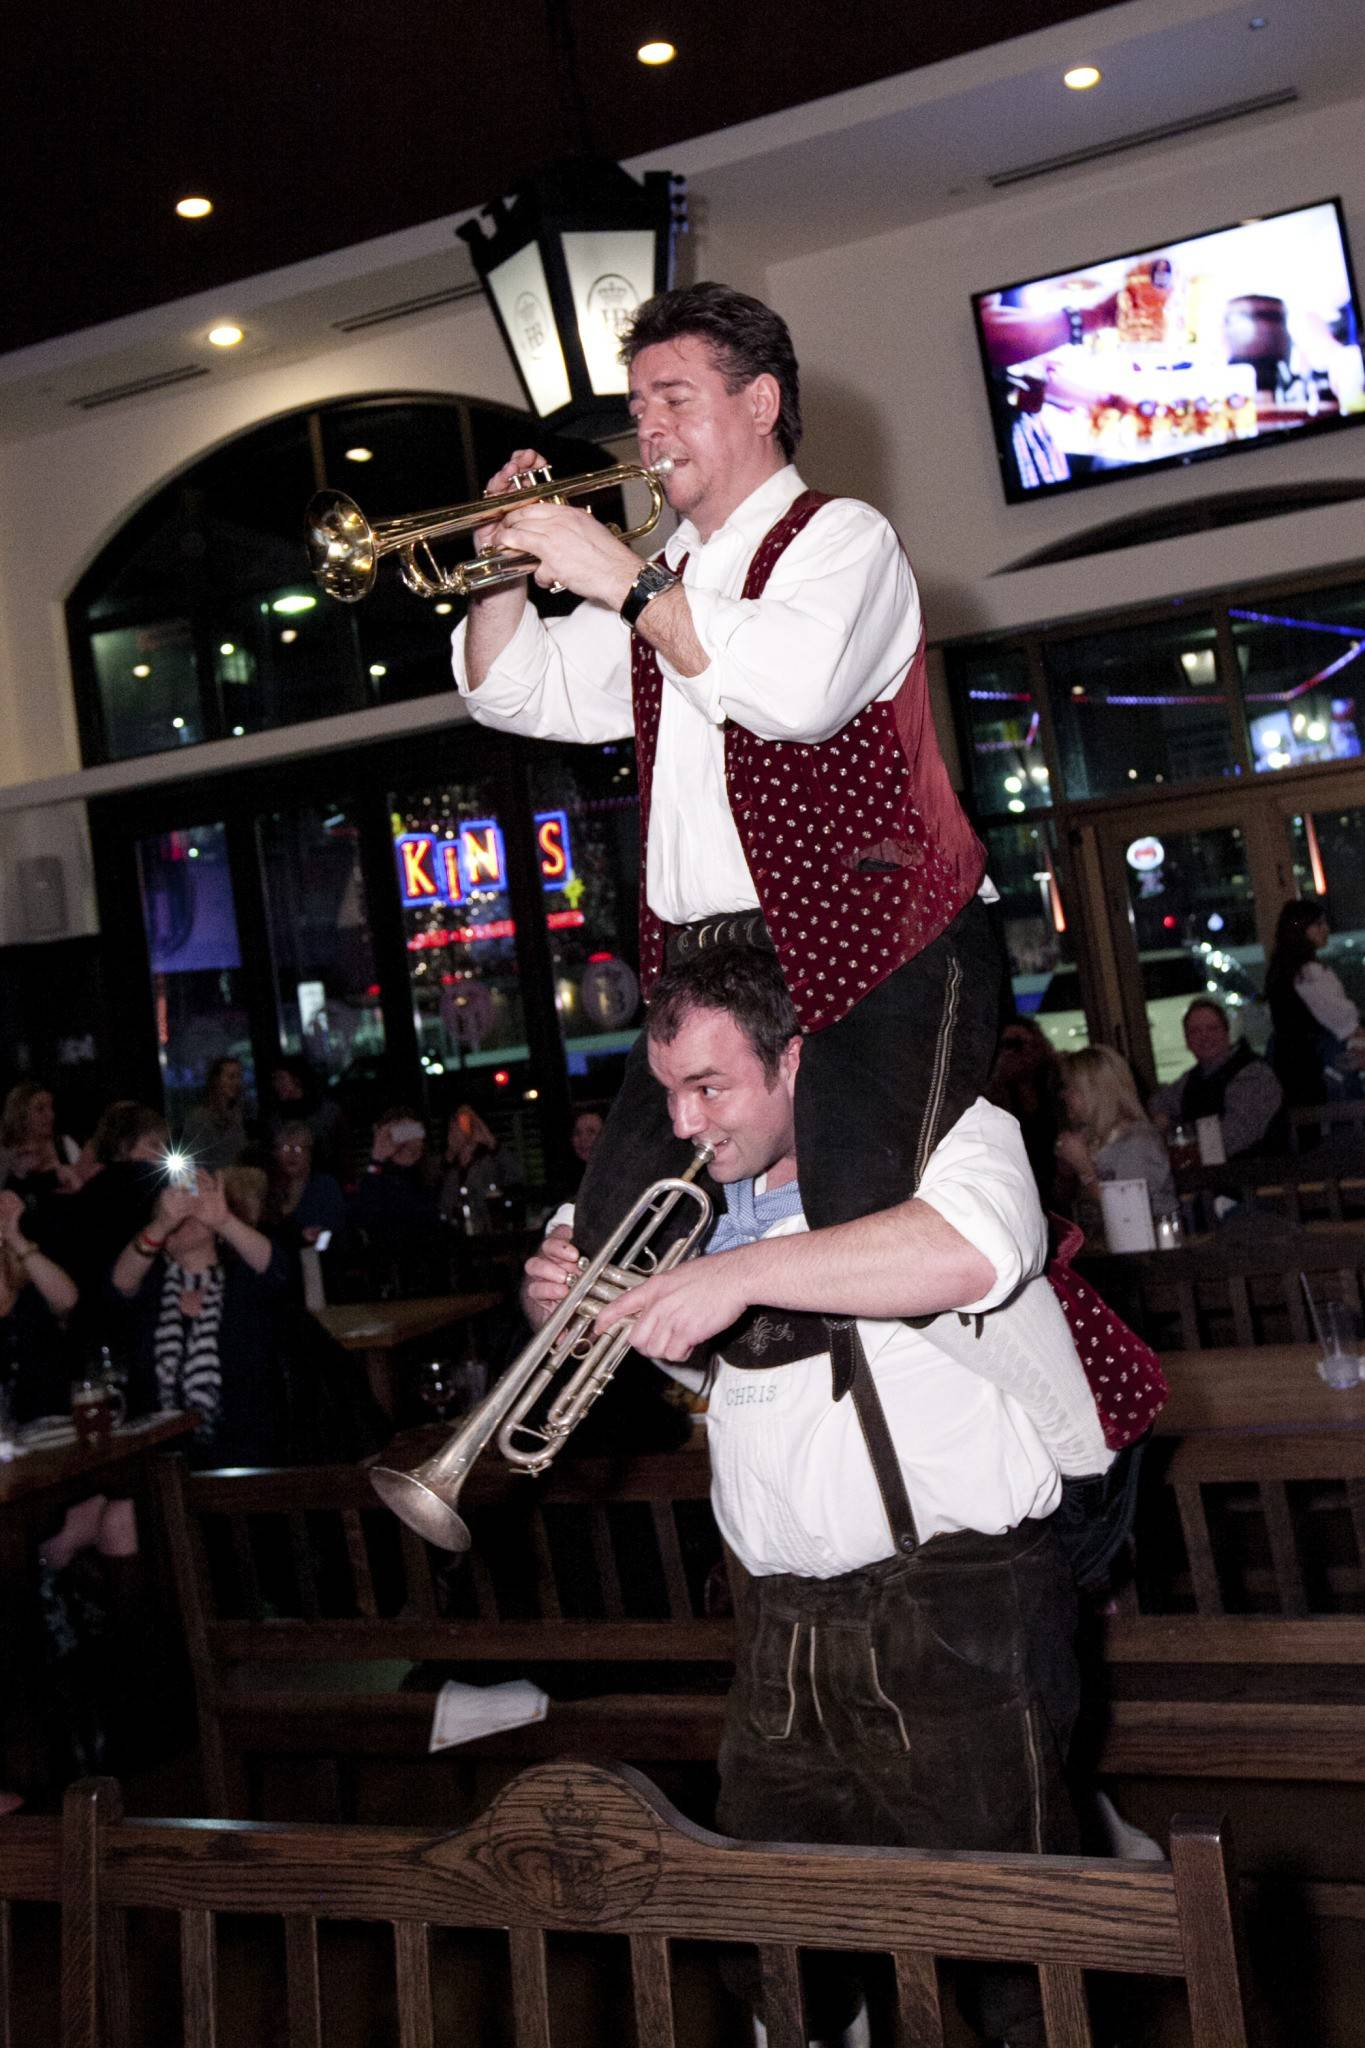 German buglers are among the featured acts scheduled to perform during the Oktoberfest celebration at Hofbrauhaus Chicago in Rosemont.